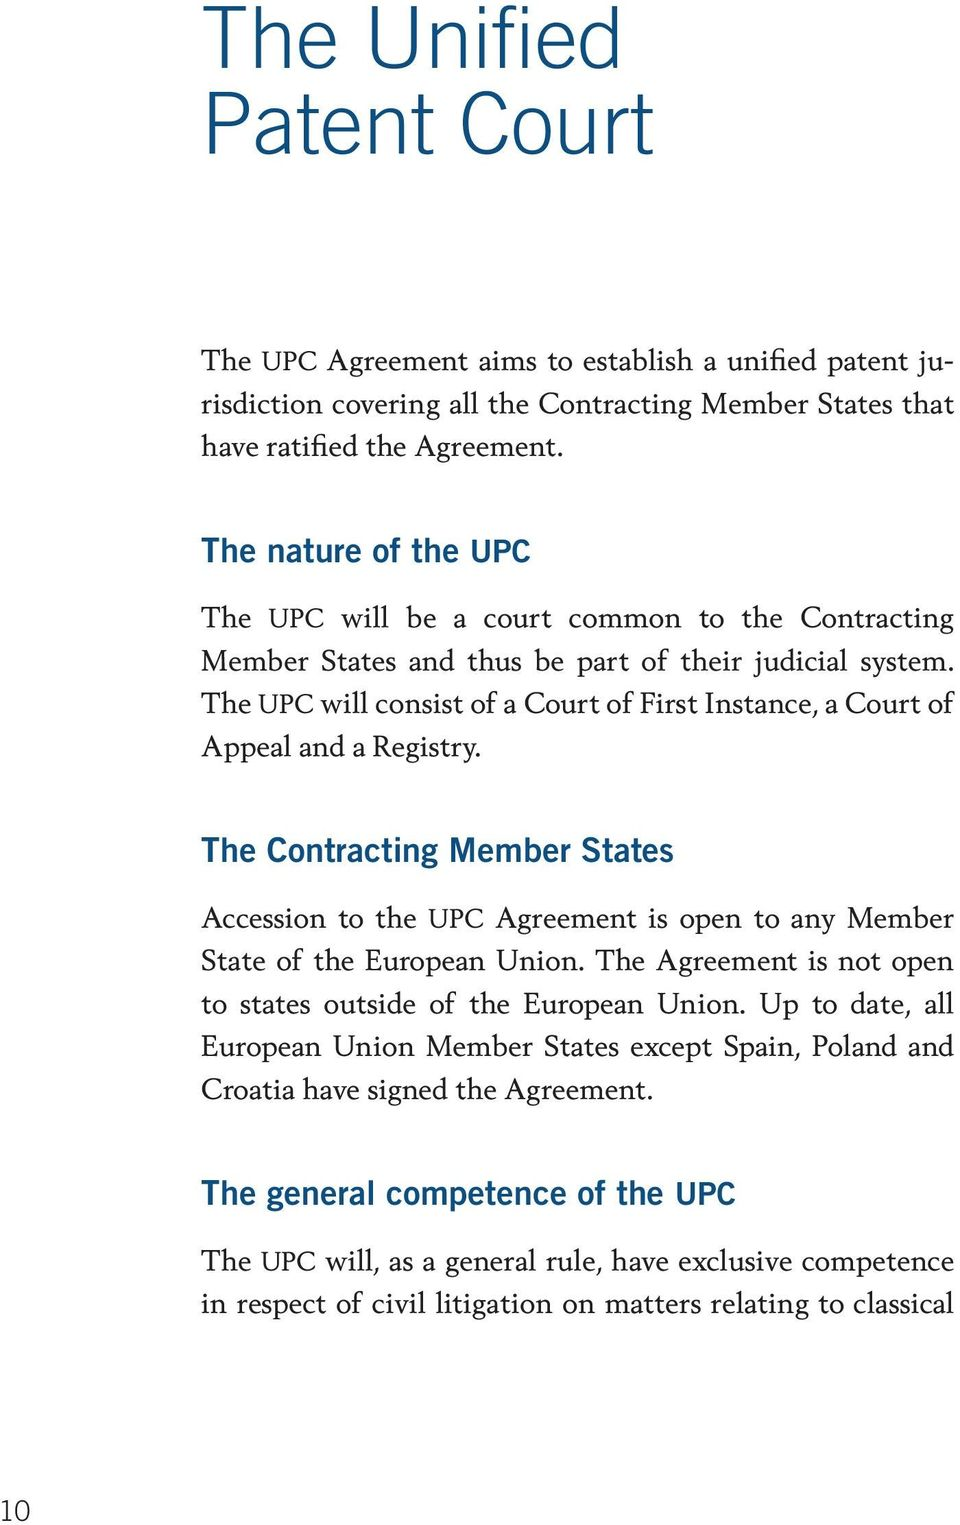 The UPC will consist of a Court of First Instance, a Court of Appeal and a Registry. The Contracting Member States Accession to the UPC Agreement is open to any Member State of the European Union.